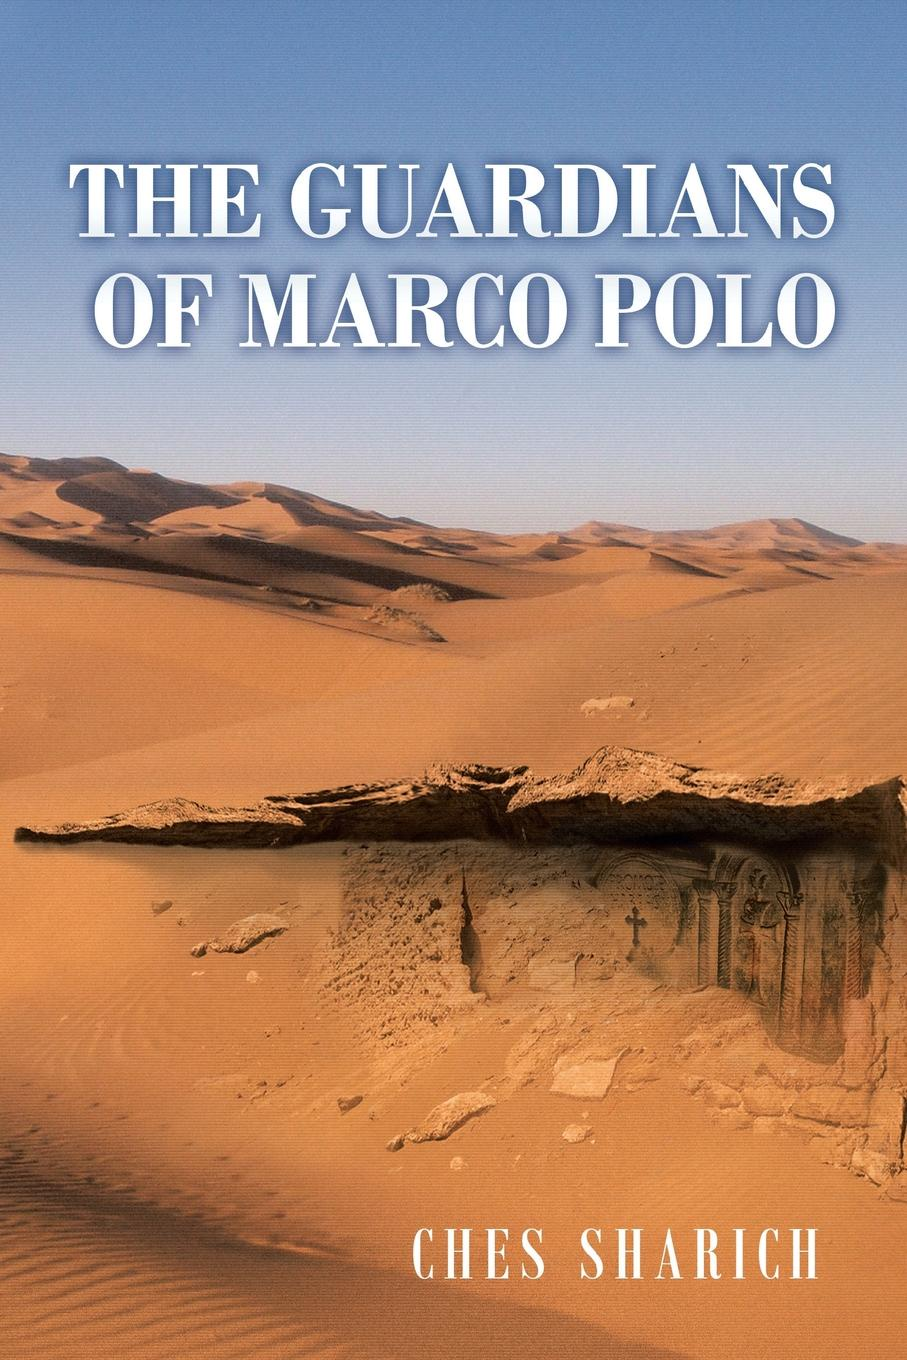 Ches Sharich The Guardians of Marco Polo marco polo ут 00001113